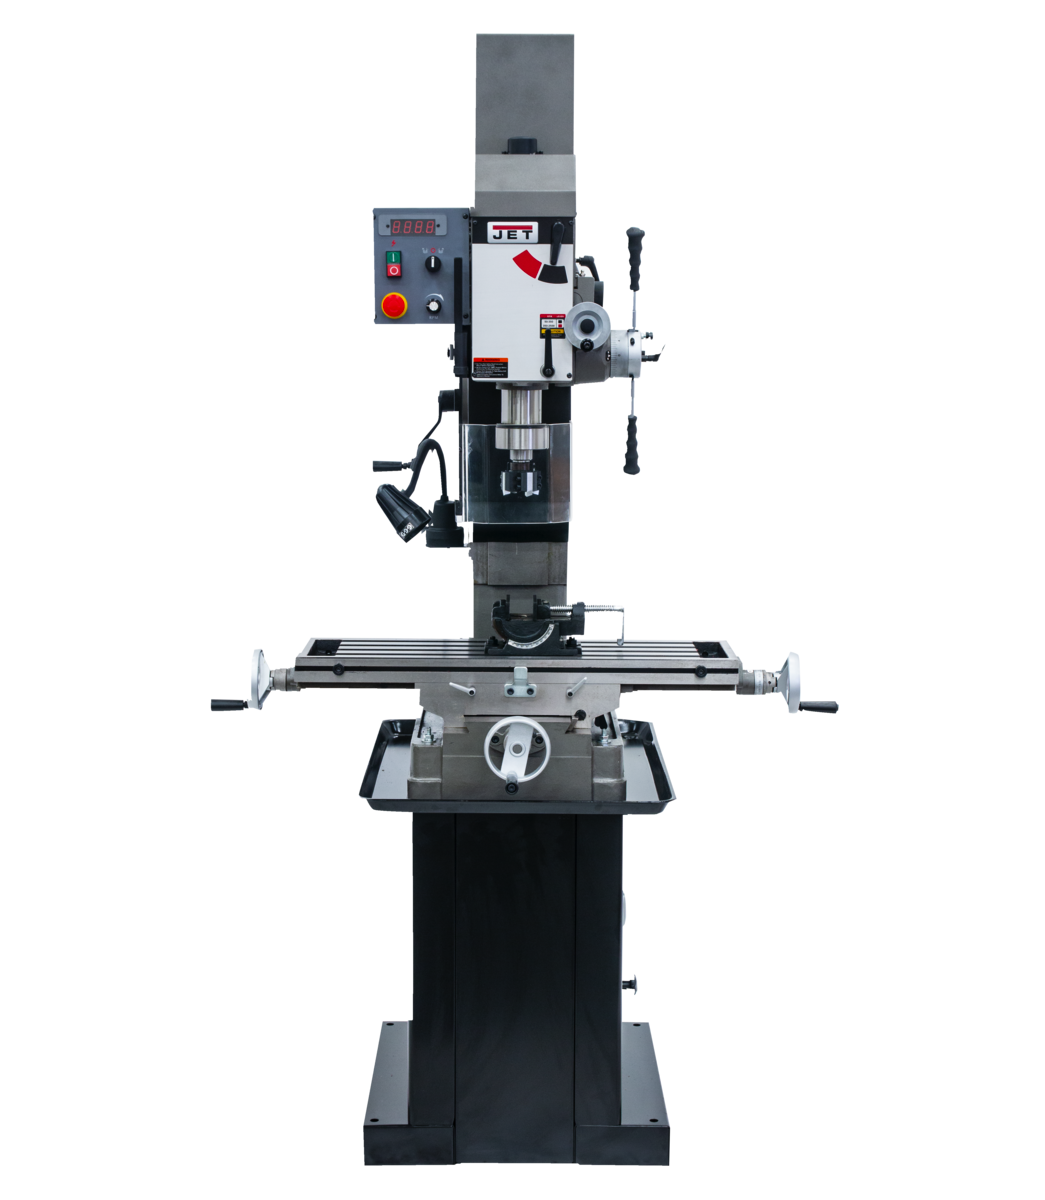 JMD-45VSPF Variable Speed Square Column Geared Head Mill/Drill with Newall DP700 2-Axis DRO